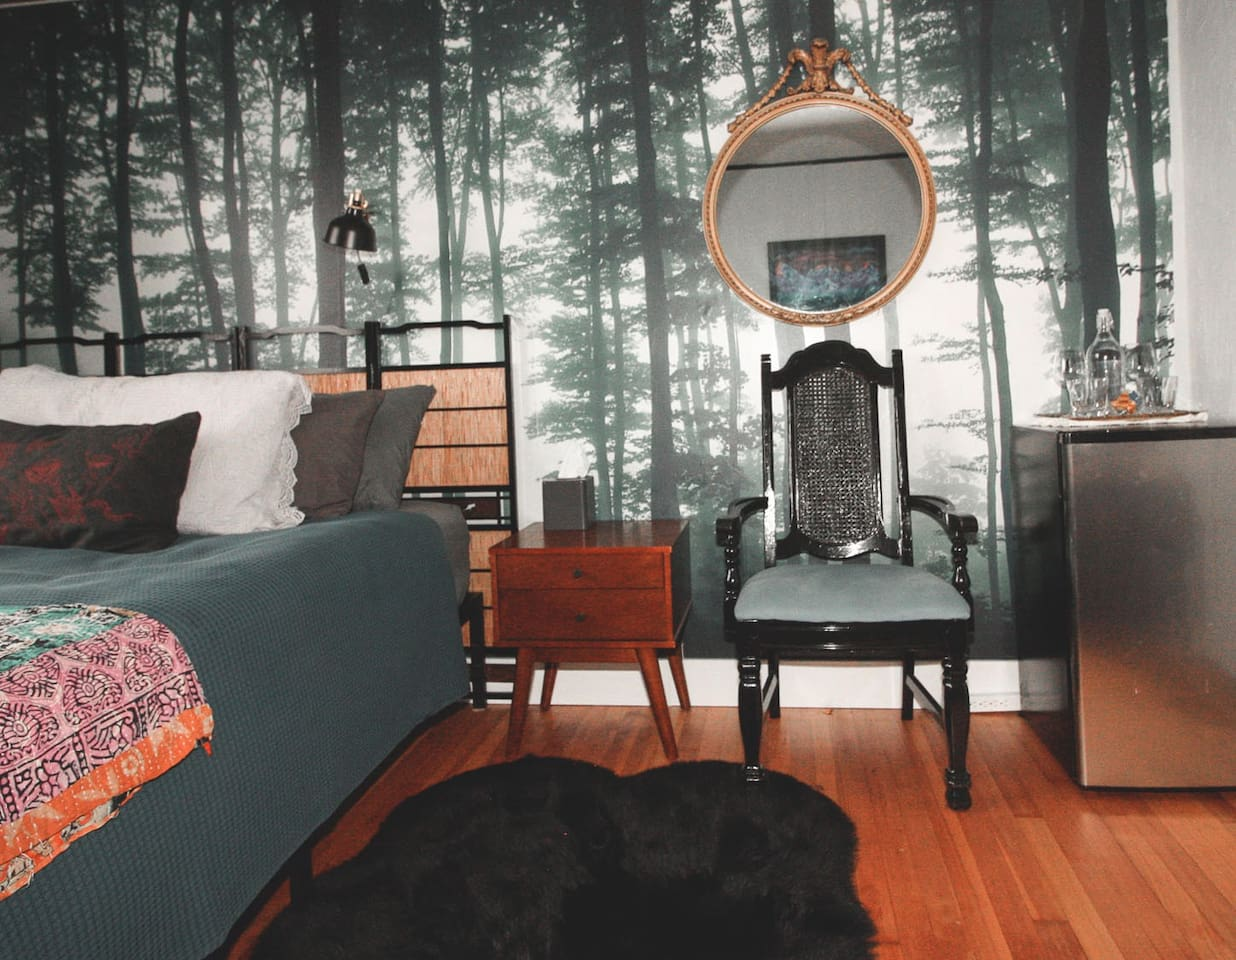 This room has a mini-fridge with lots of details including a gorgeous faux fur rug.